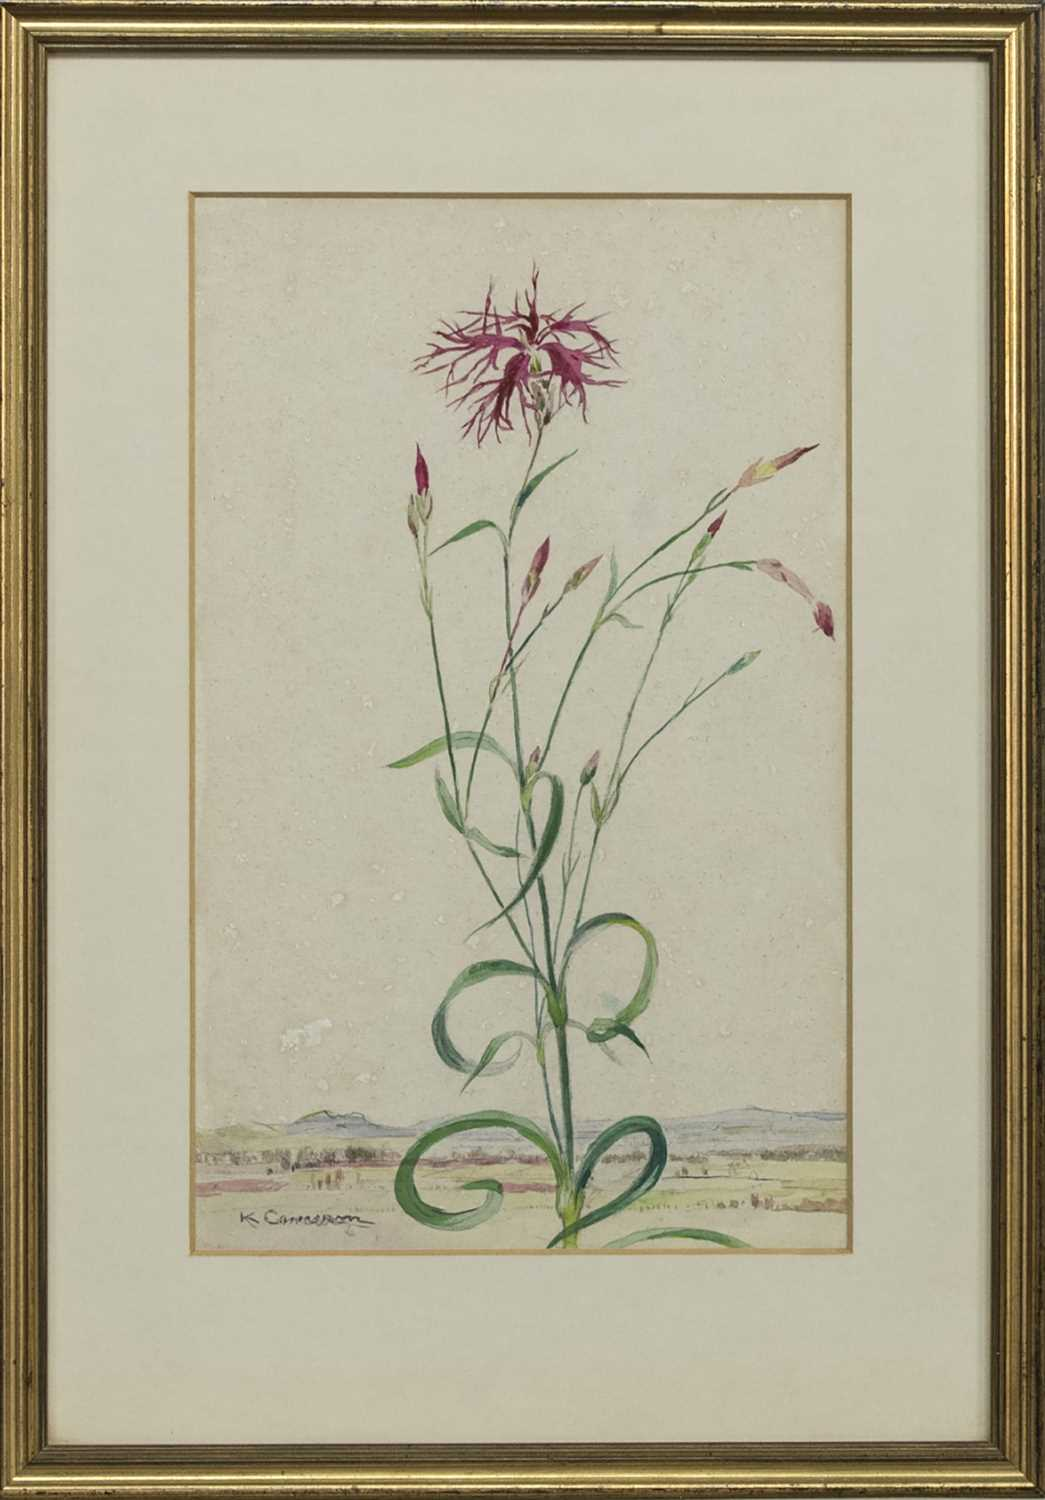 Lot 12 - FLOWER STUDY, A WATERCOLOUR BY KATHARINE CAMERON